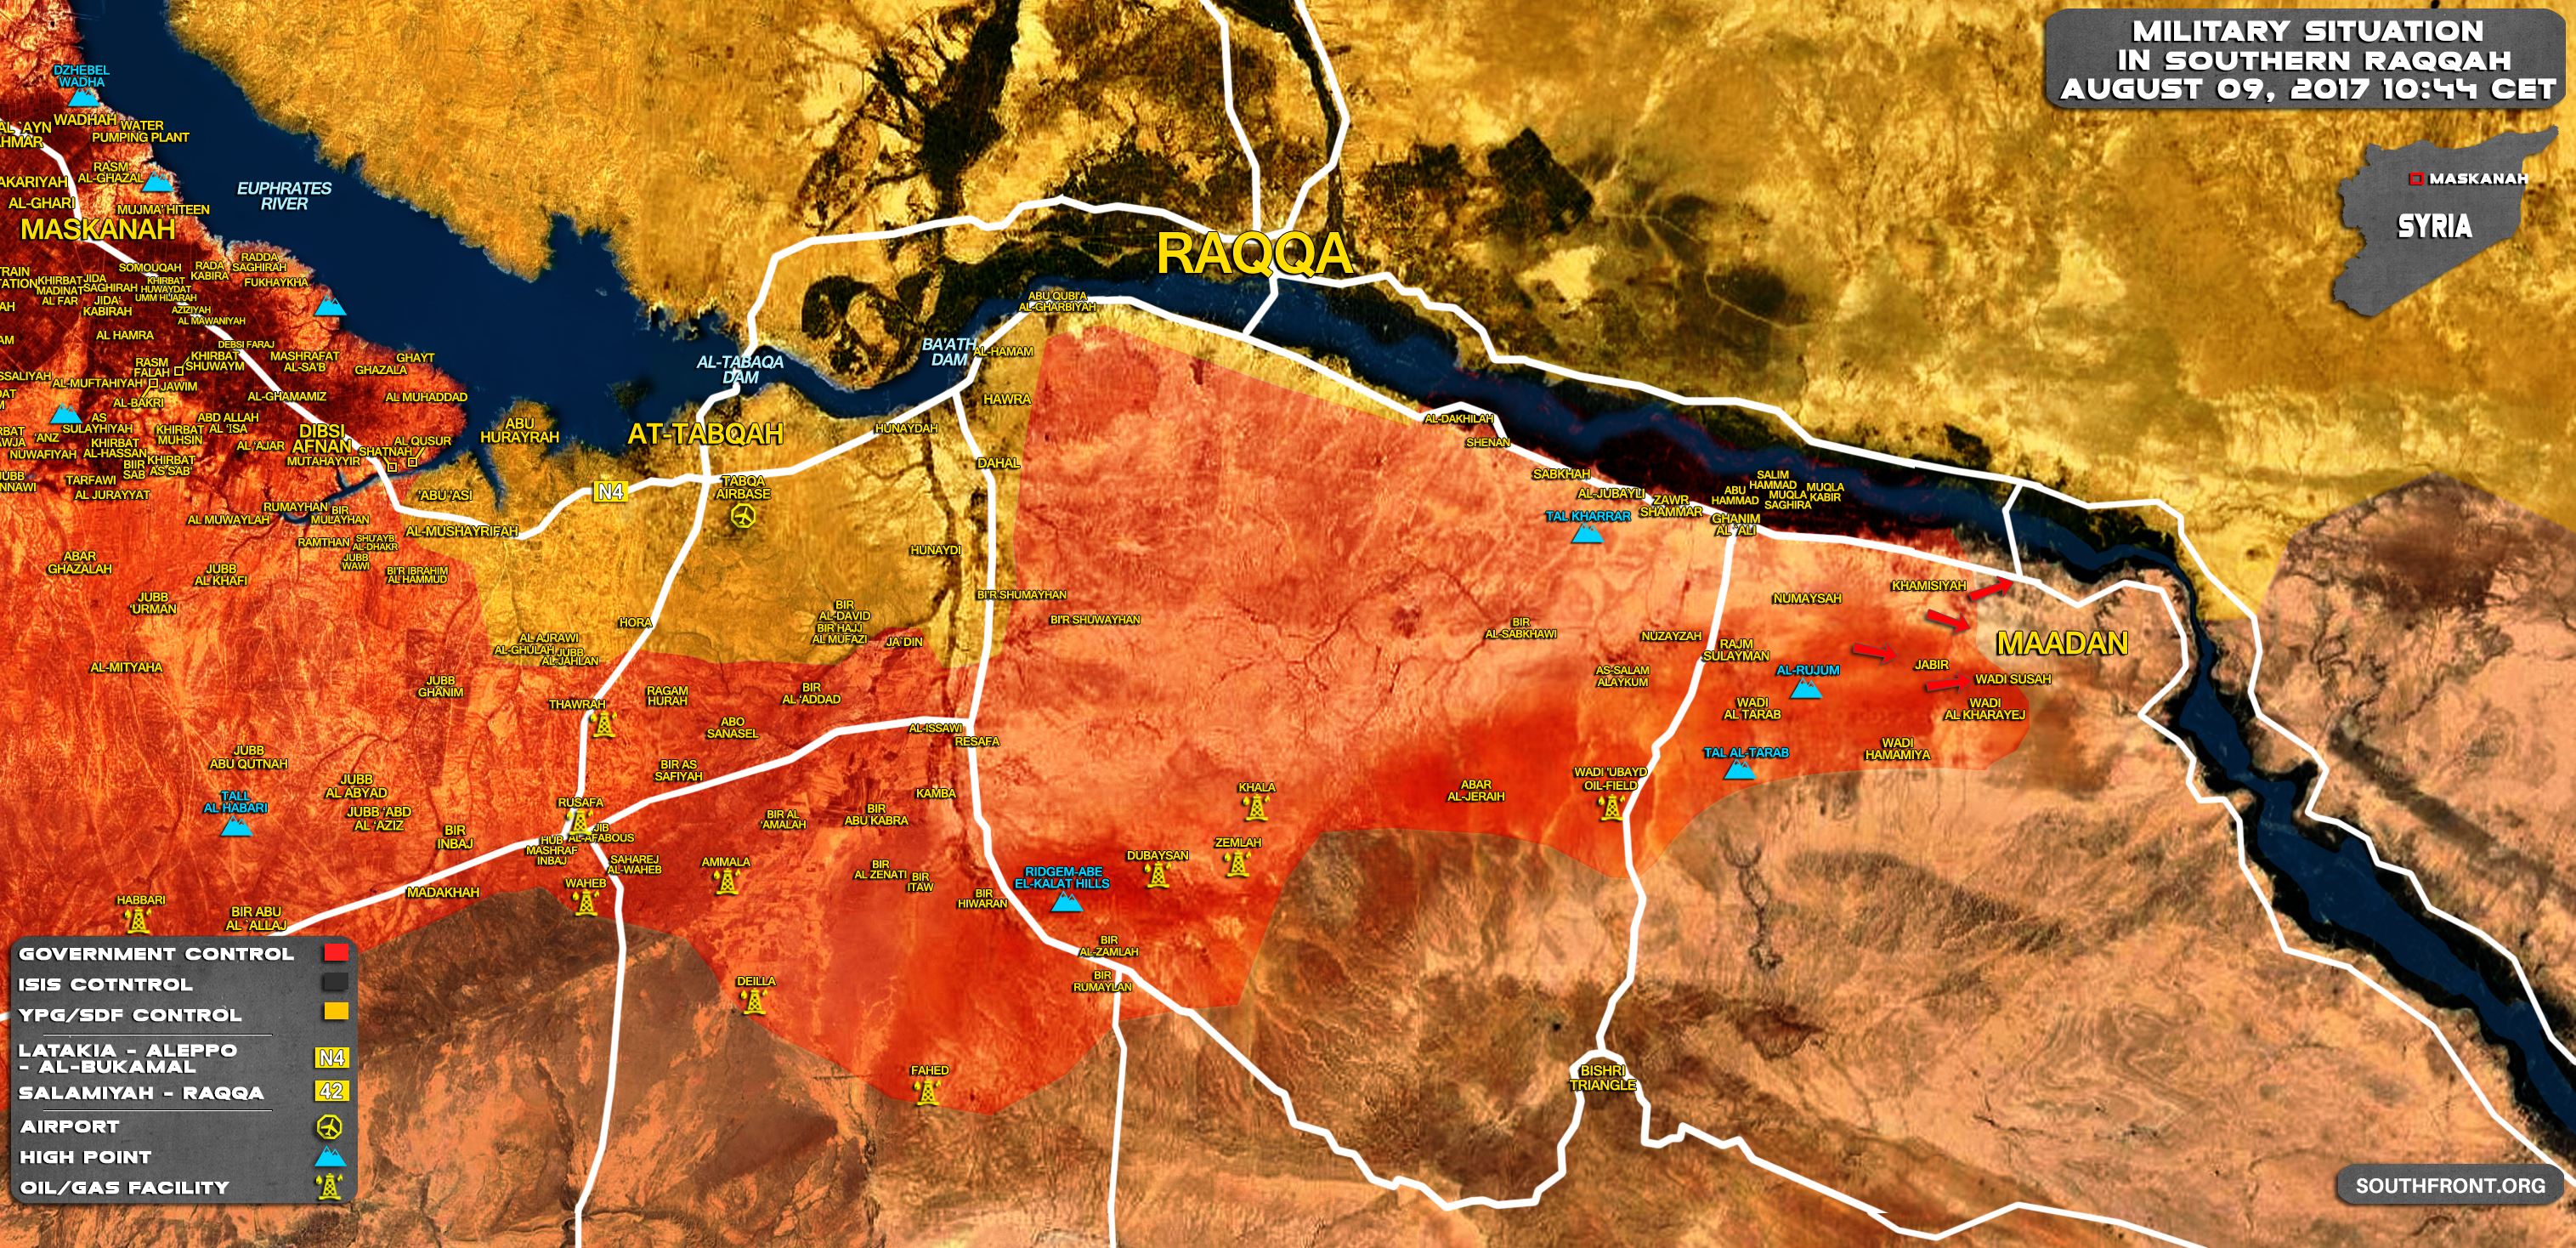 09Aug_SouthernRaqqah_War_Map-2